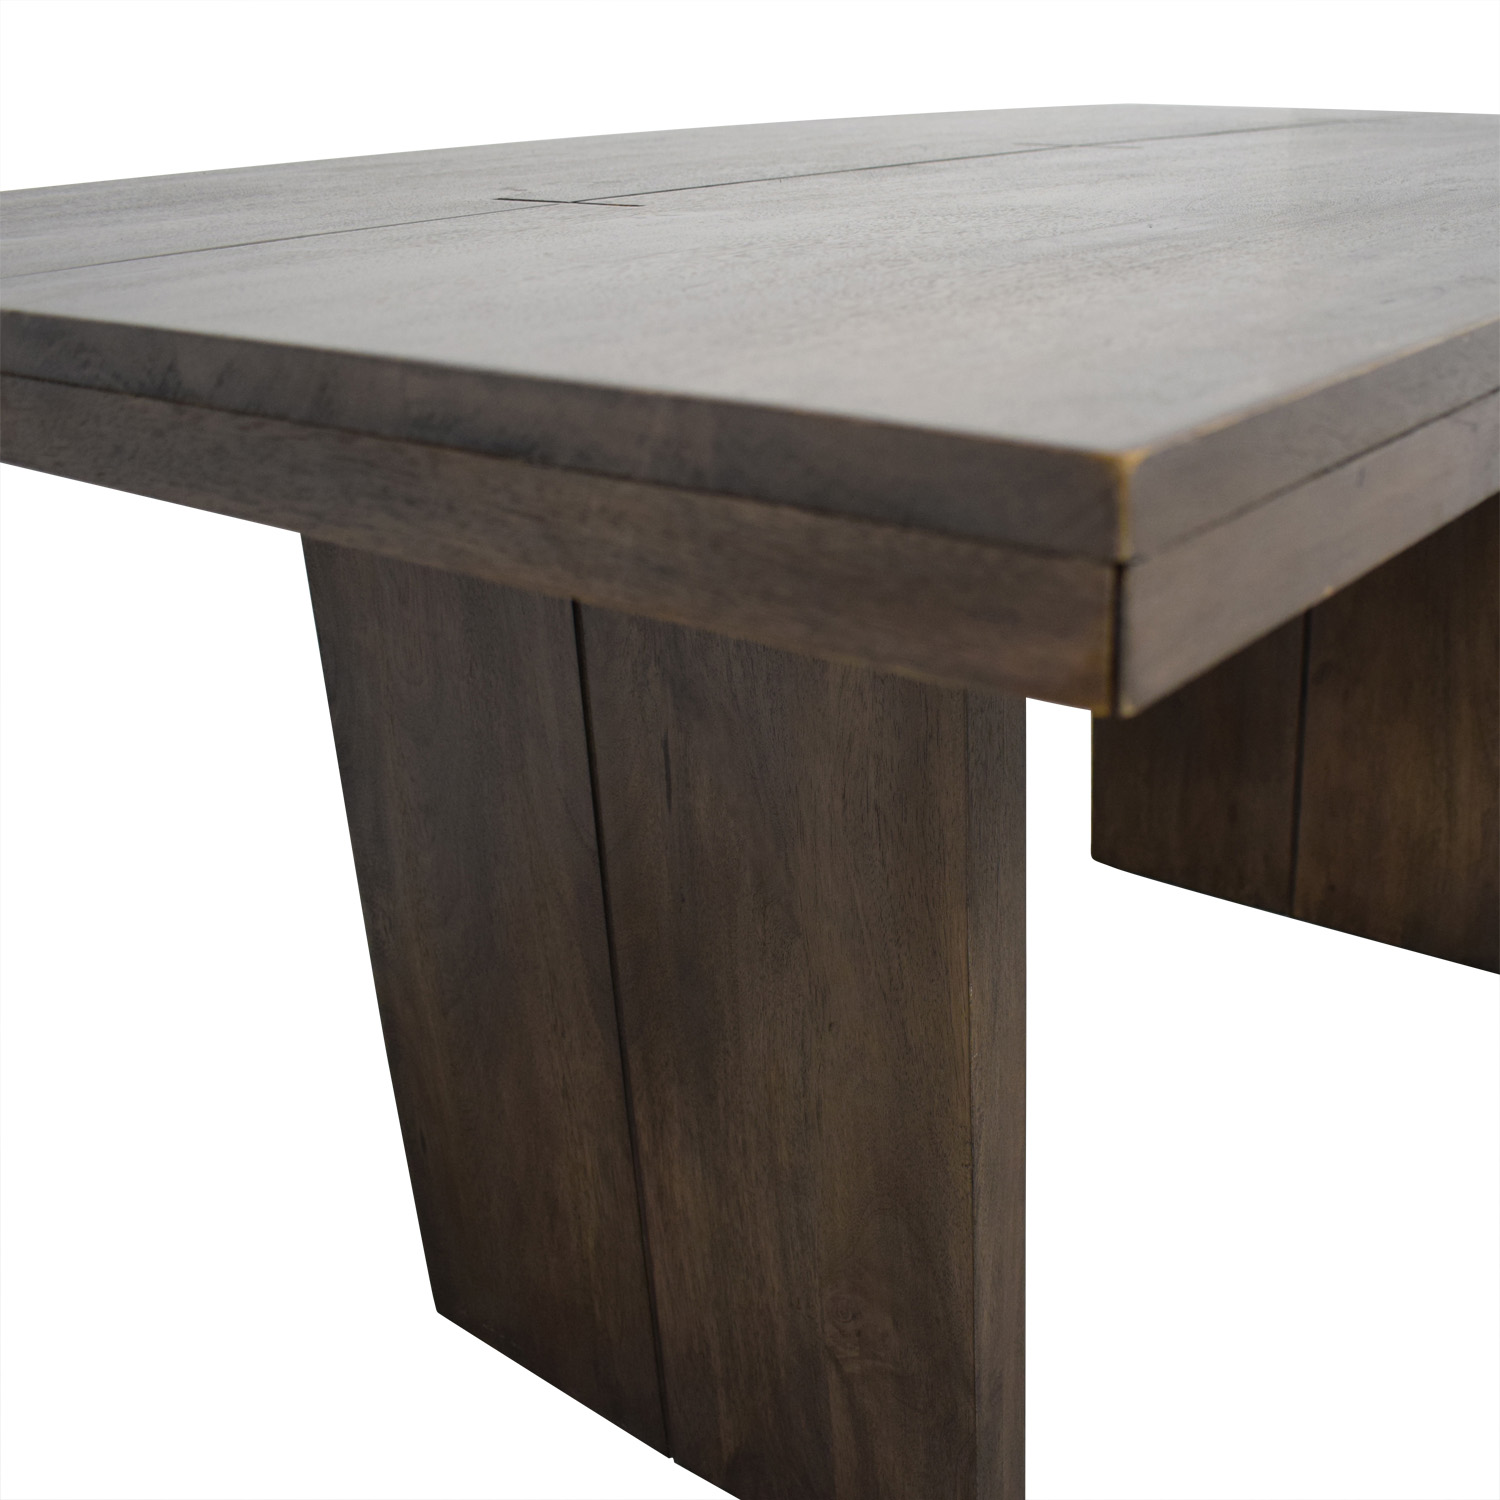 66% OFF   West Elm West Elm Hayden Dining Table / Tables